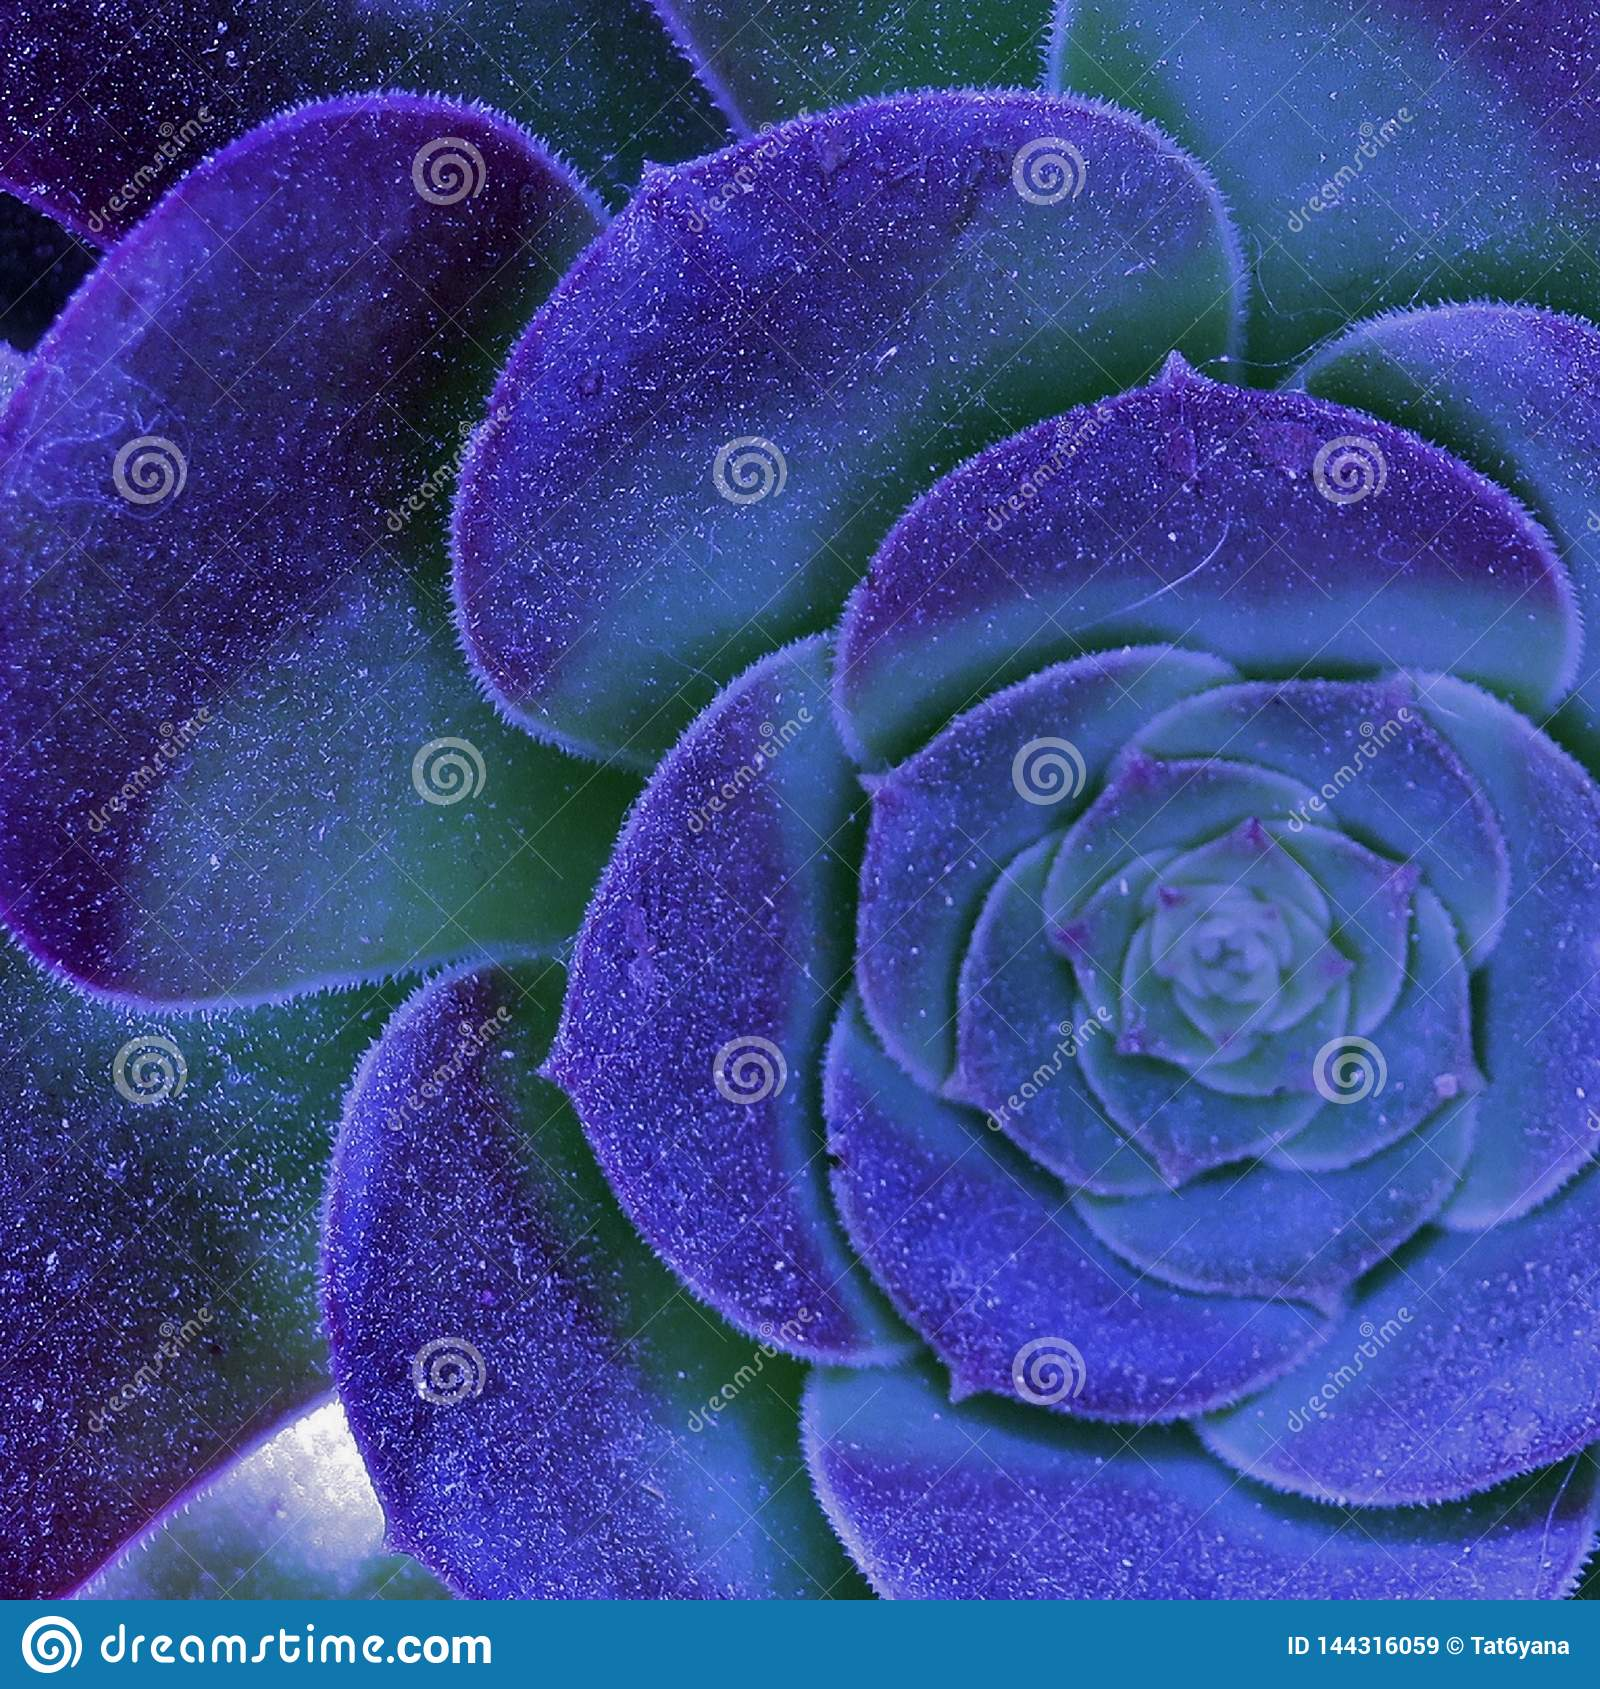 Beautiful blooming large flower of blue-purple color